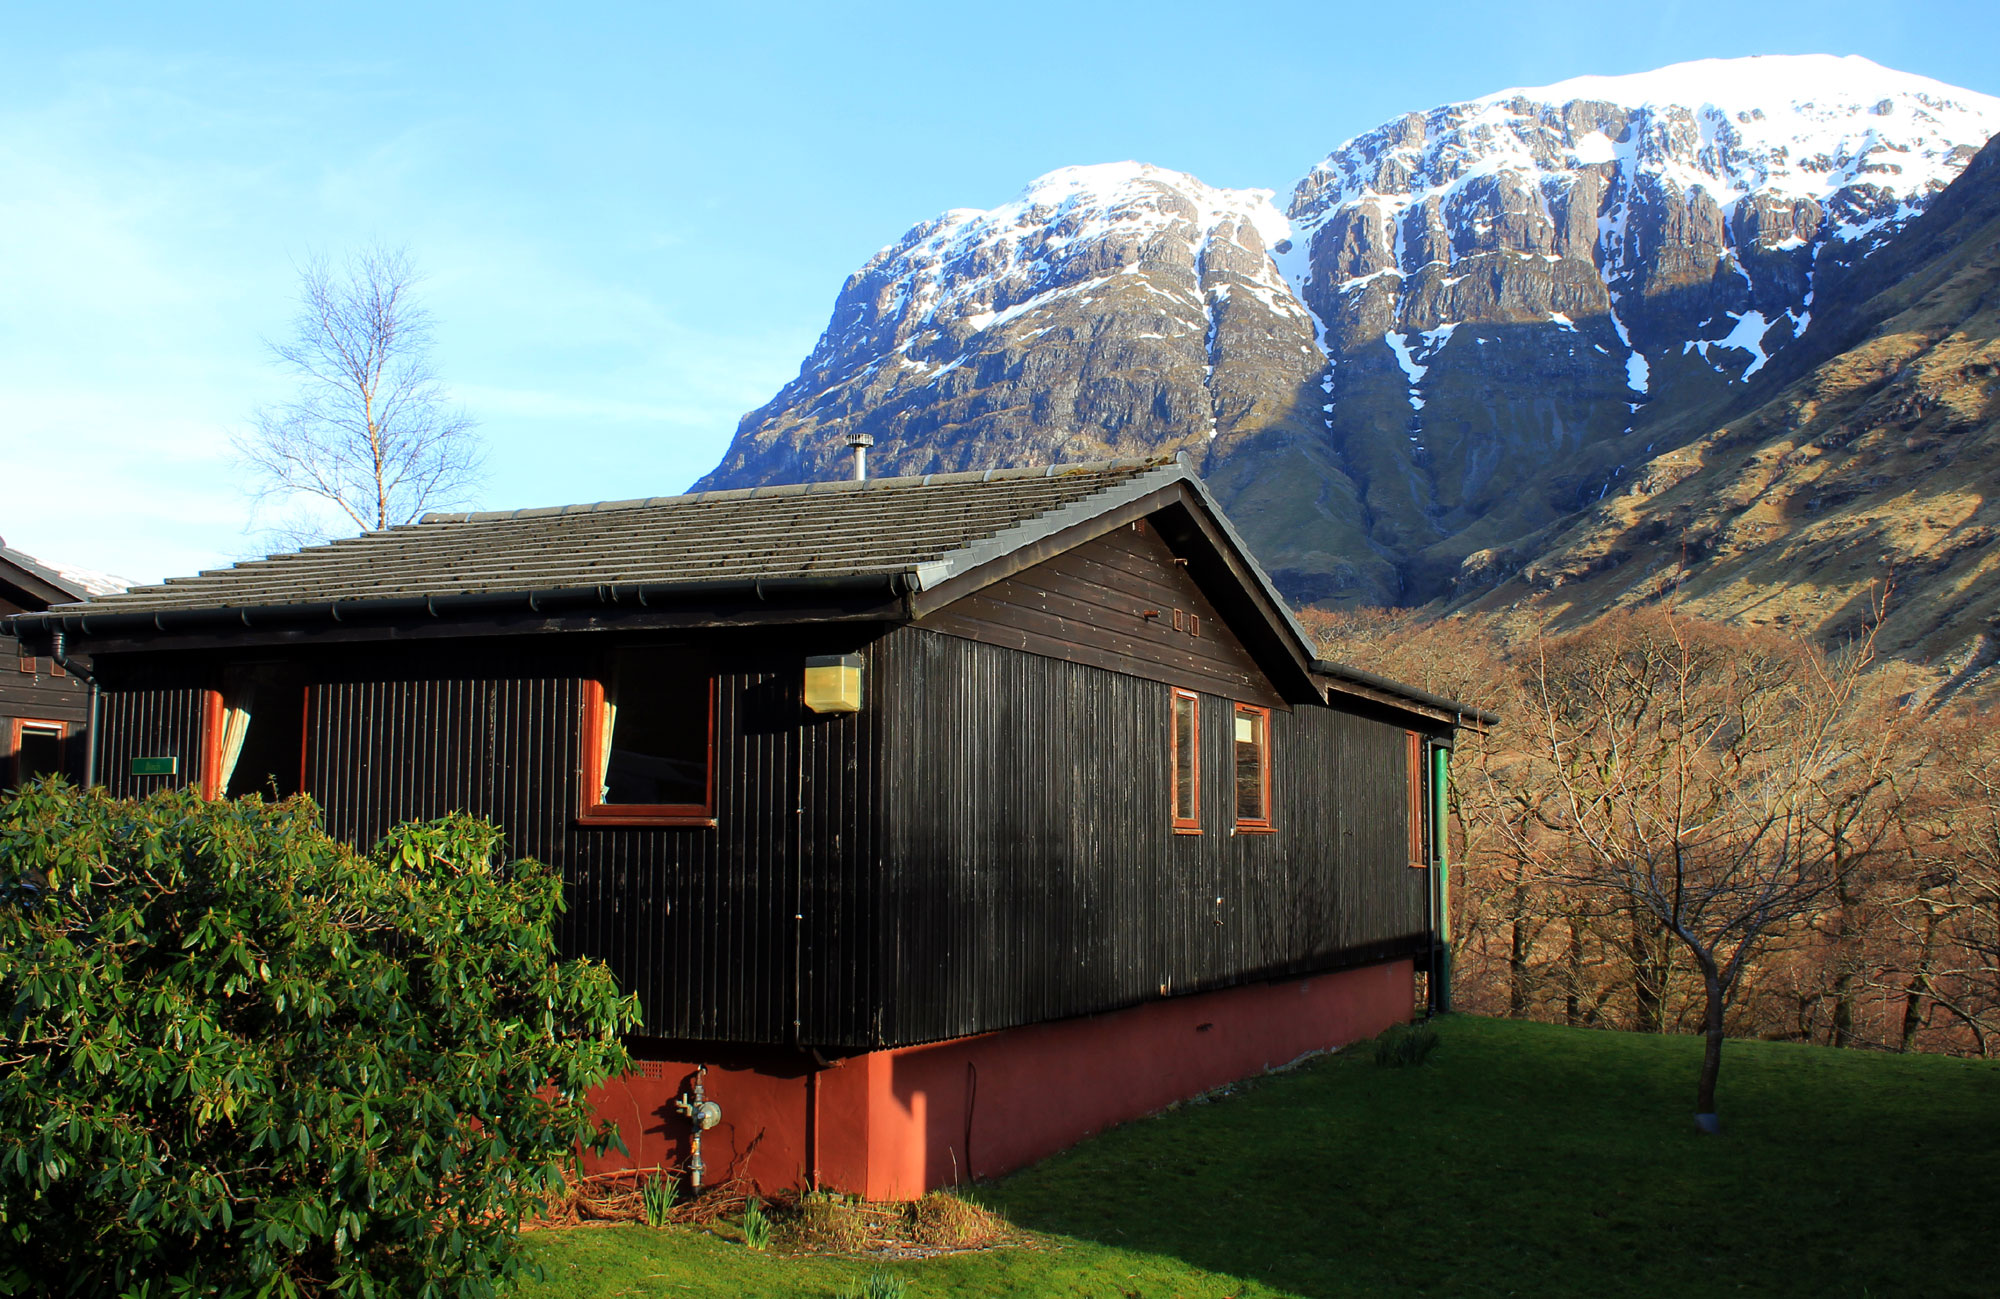 Birch Chalet in the spring, Glencoe